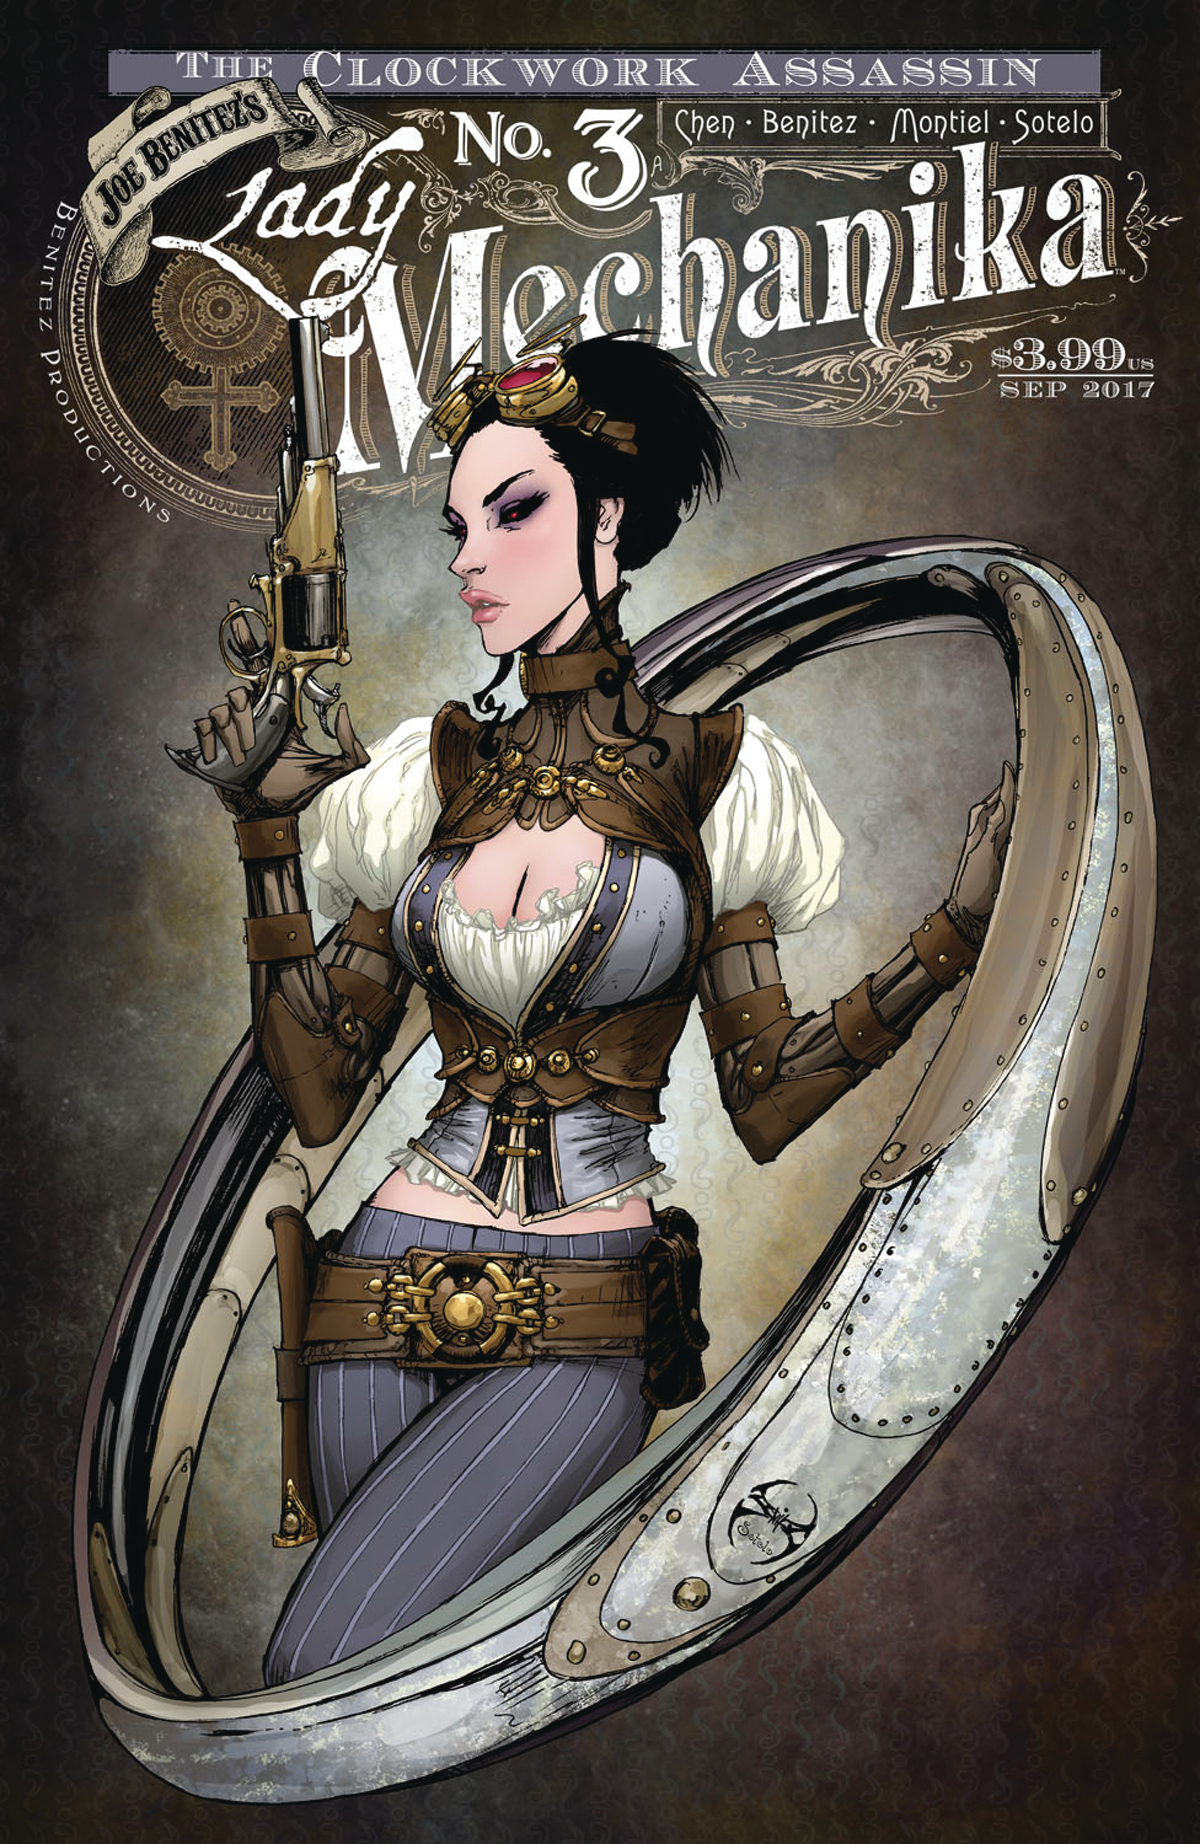 LADY MECHANIKA CLOCKWORK ASSASSIN #3 (OF 3)